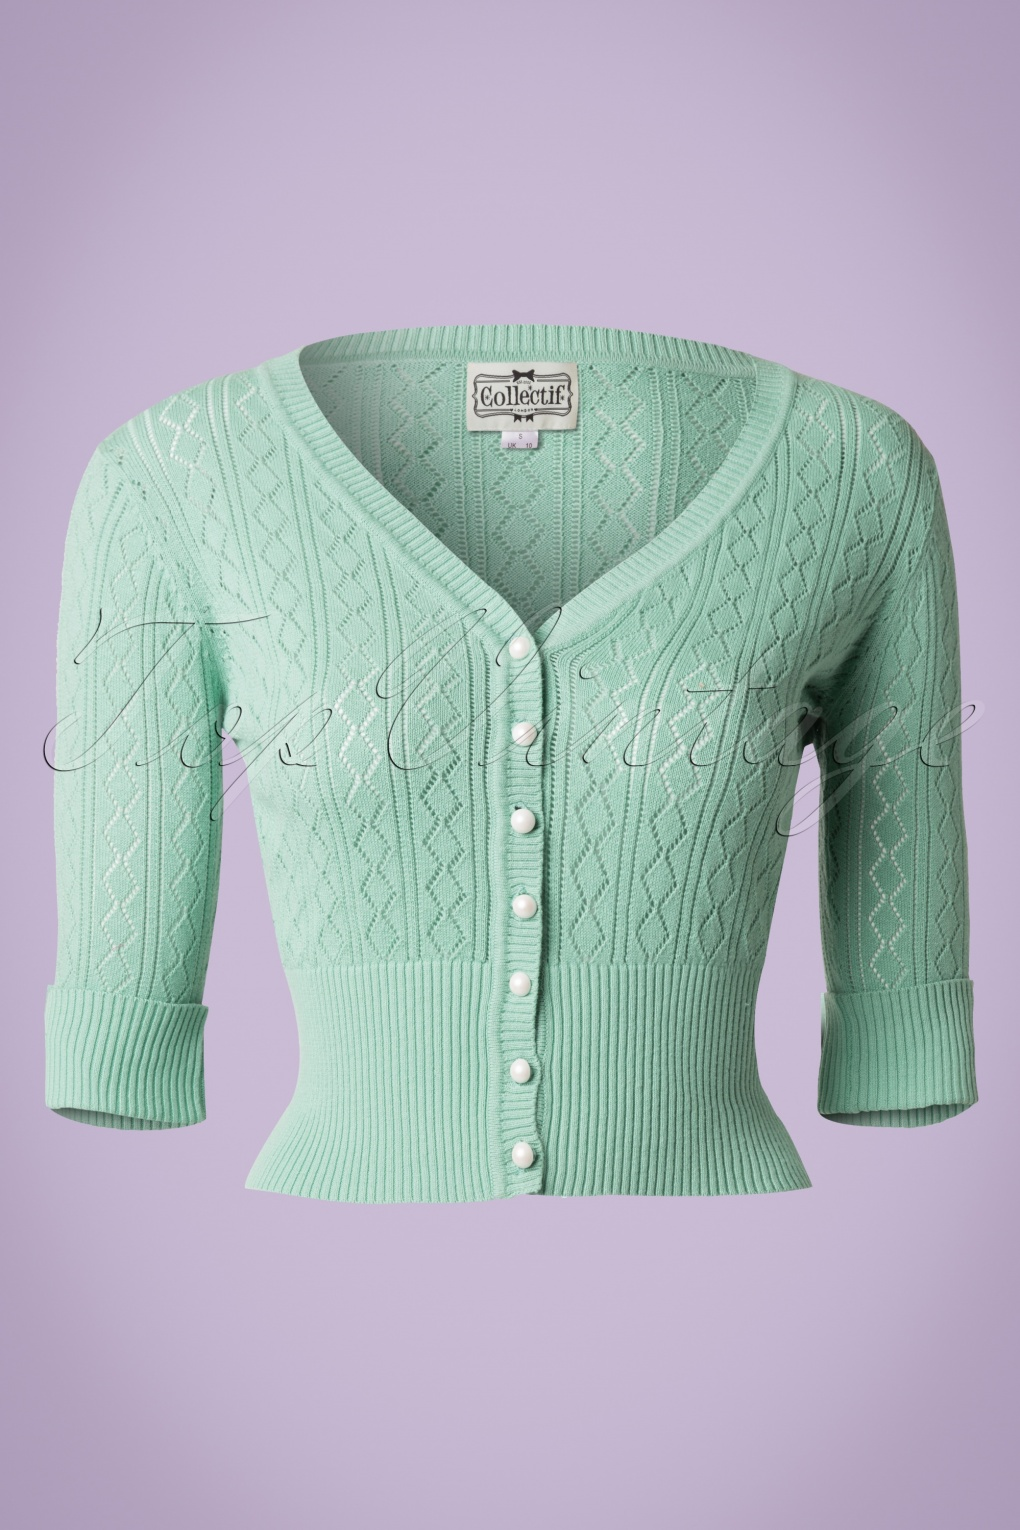 Vintage & Retro Shirts, Halter Tops, Blouses 50s Linda Cardigan in Antique Green £34.46 AT vintagedancer.com